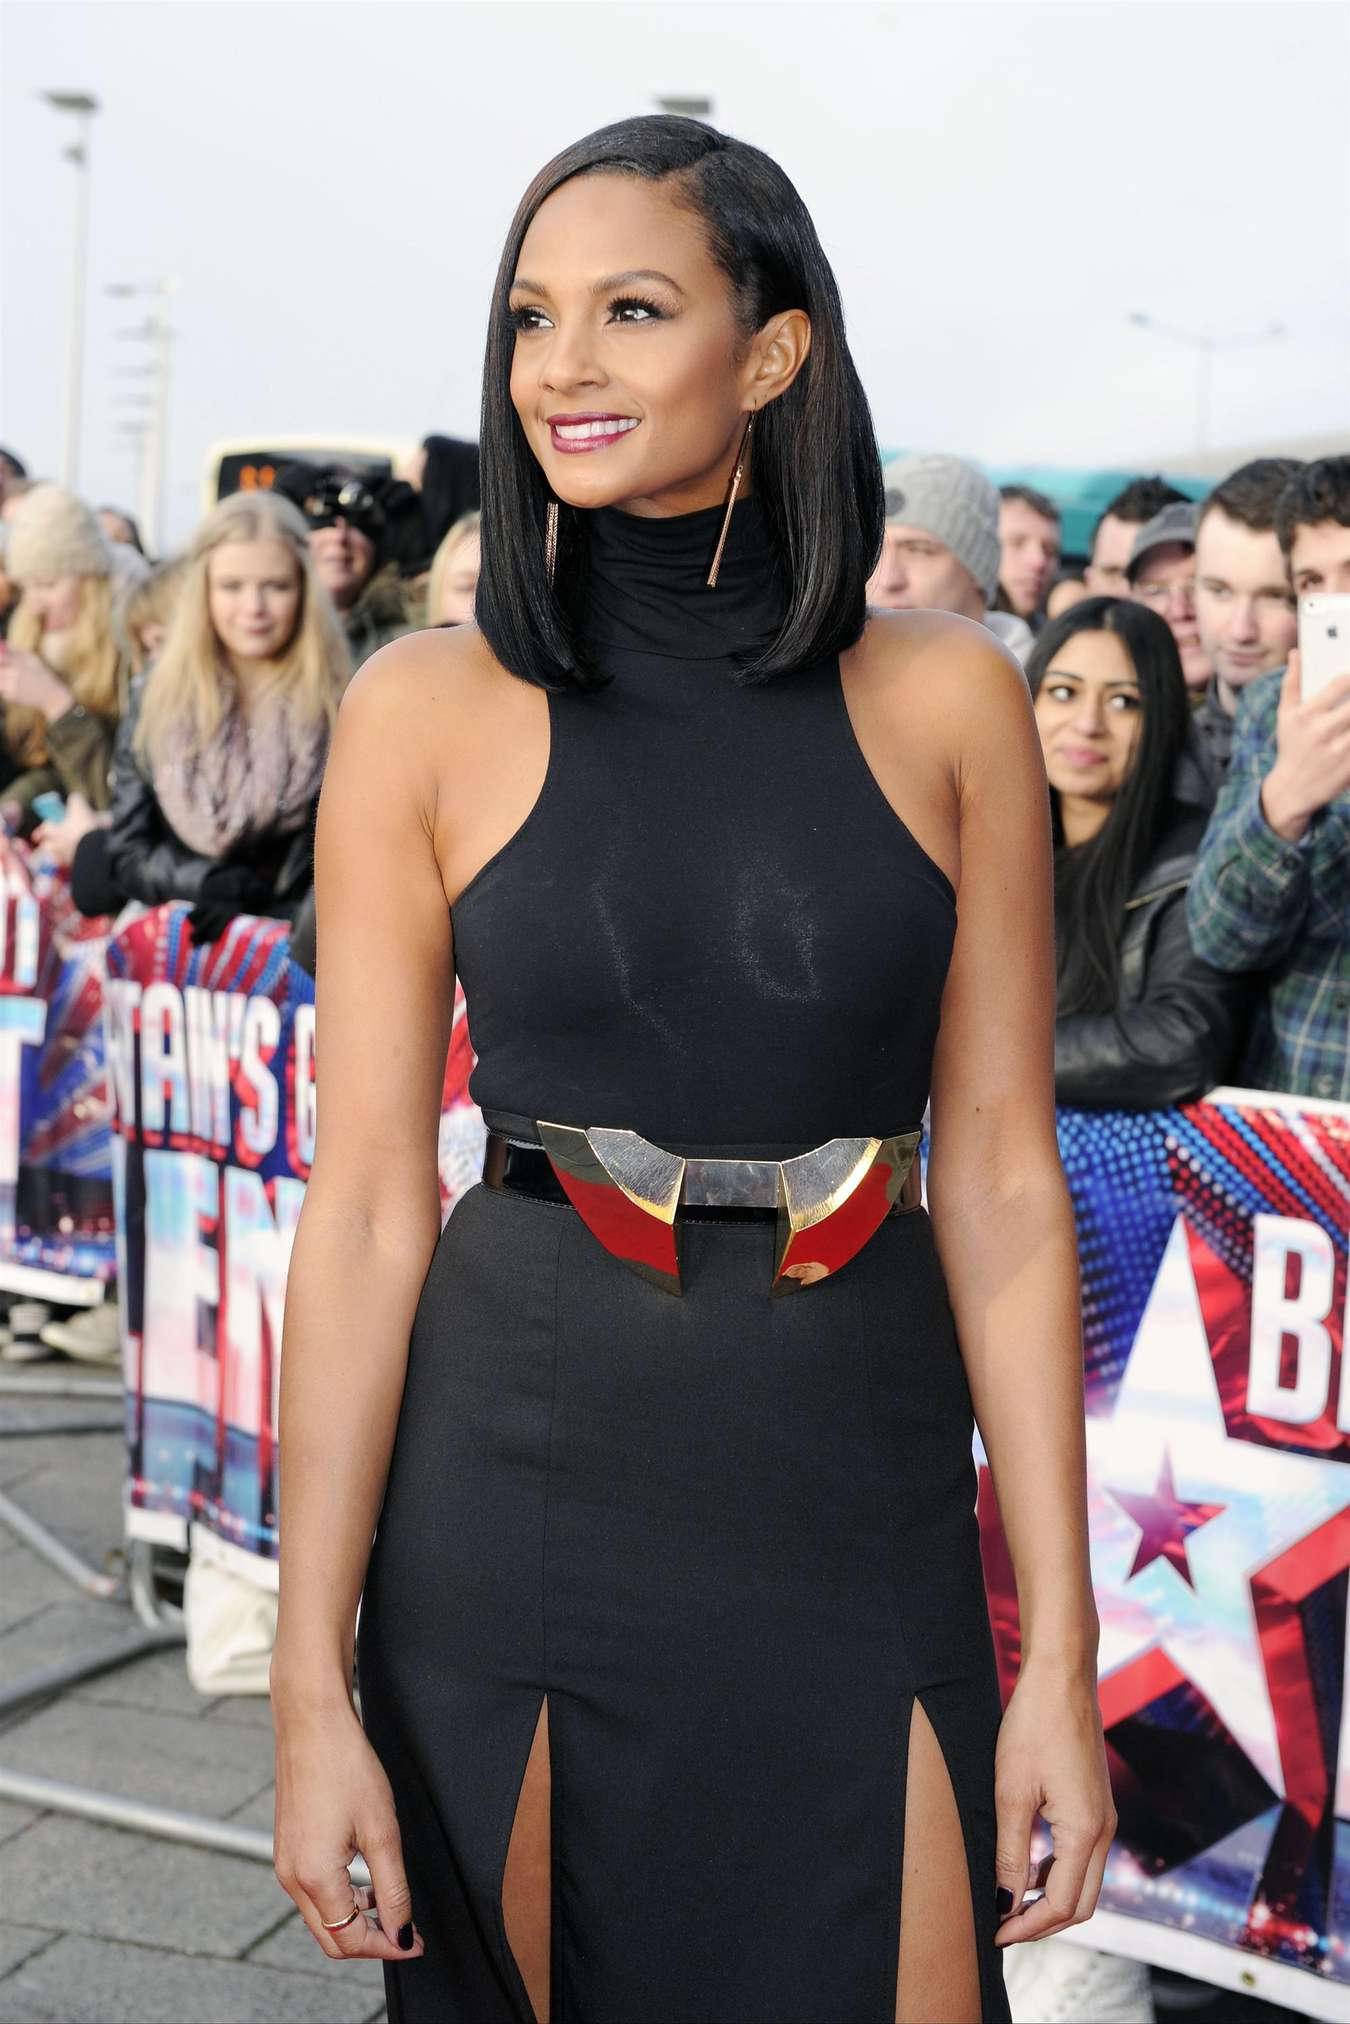 Alesha Dixon - 2013 Britain's got talent auditions in Cardiff